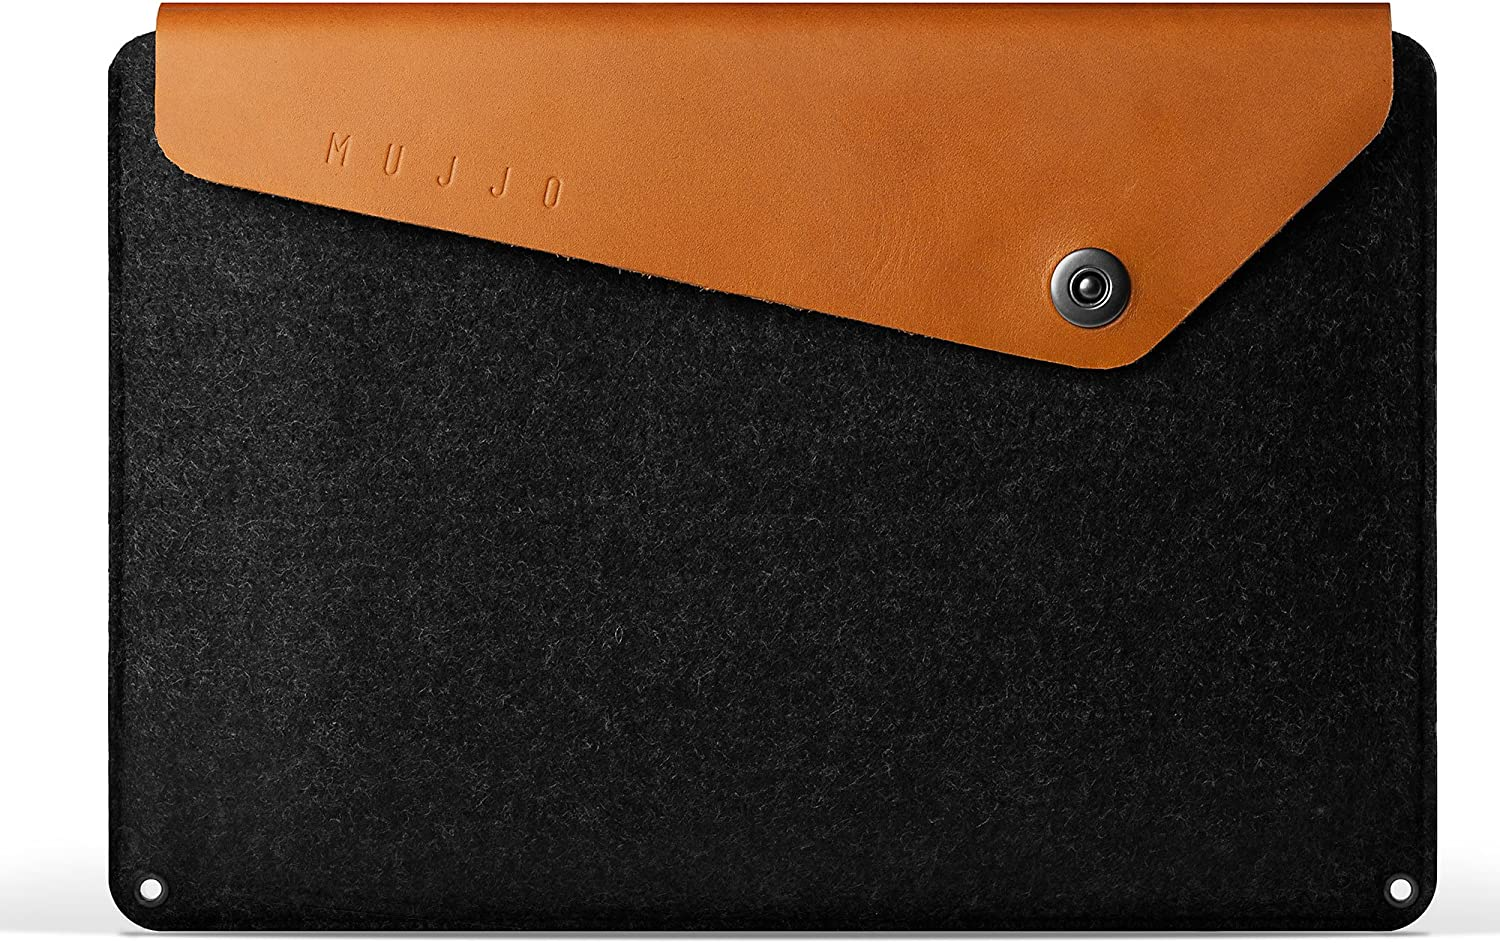 Mujjo Sleeve for MacBook Pro 15-inch | Premium Wool Felt, Genuine Leather Flap with Snap Button Closure | Storage Compartments, Card Pocket (Tan)